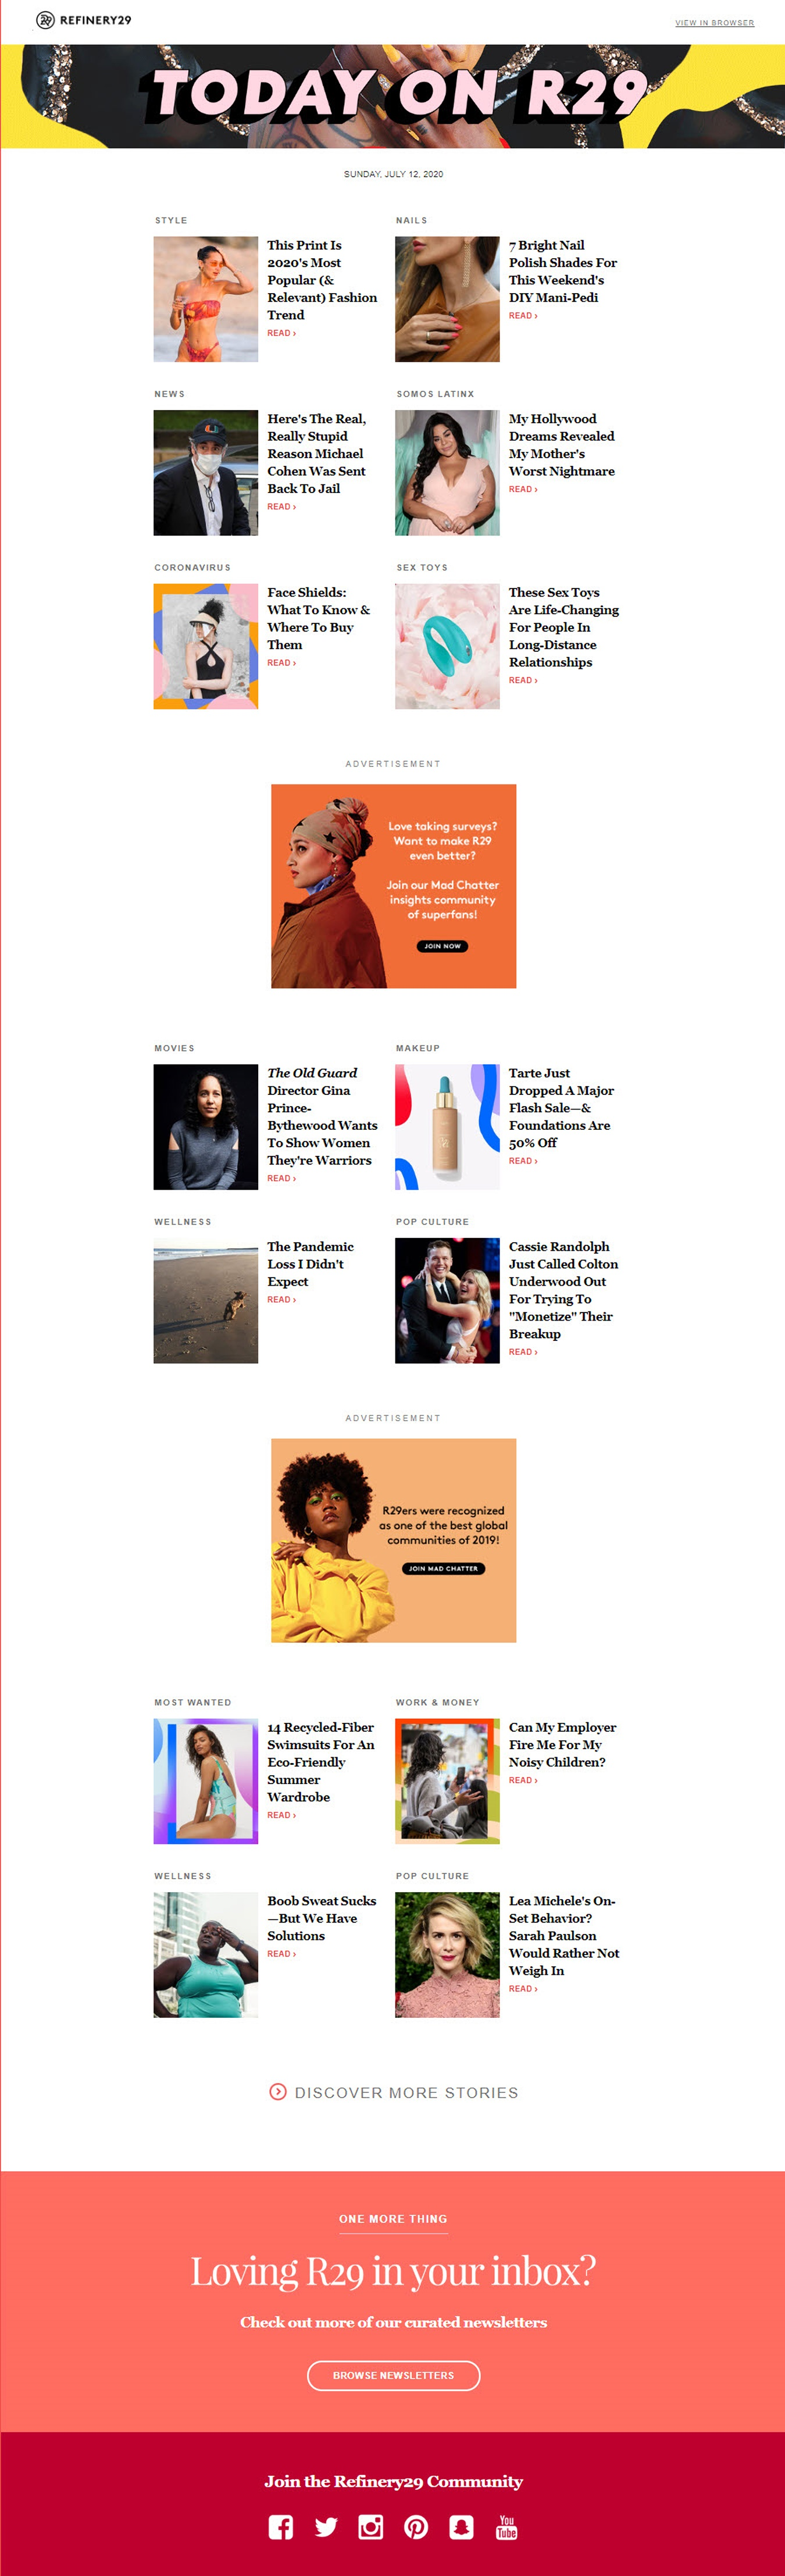 Refinery29 Provides Transparency On Partner Ads